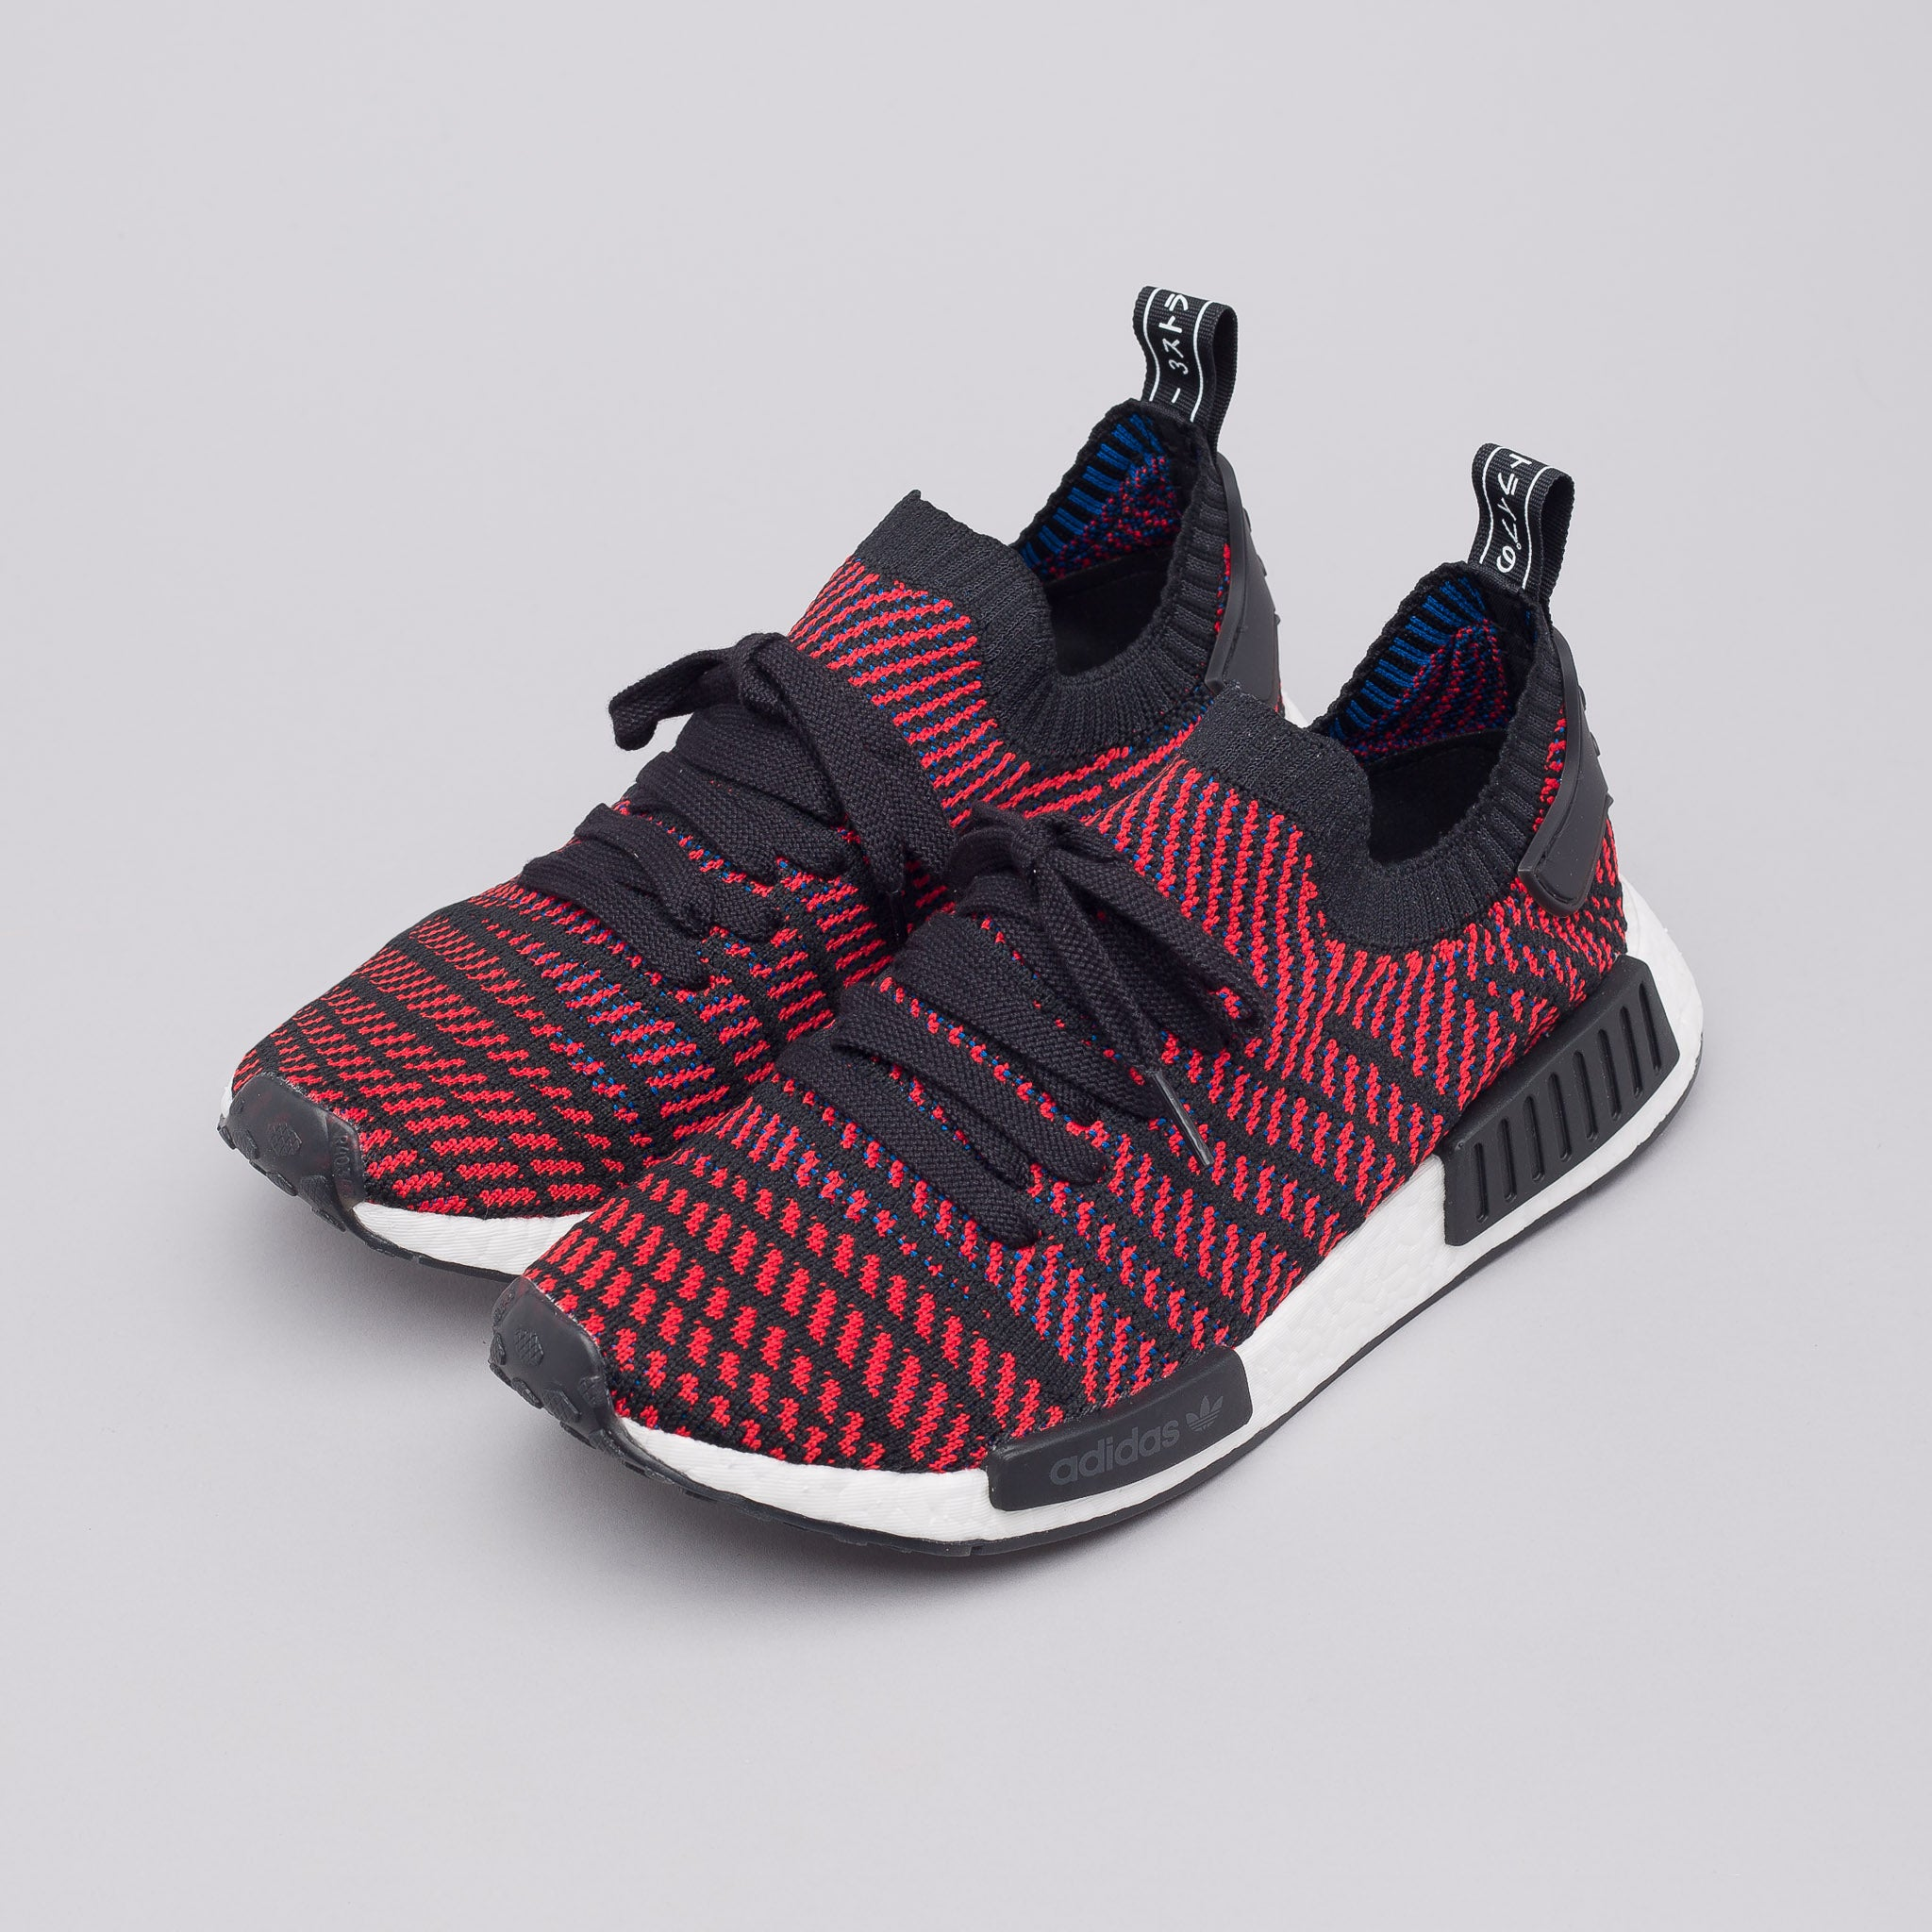 adidas Originals NMD R1 Primeknit Men's Running Shoes Linen